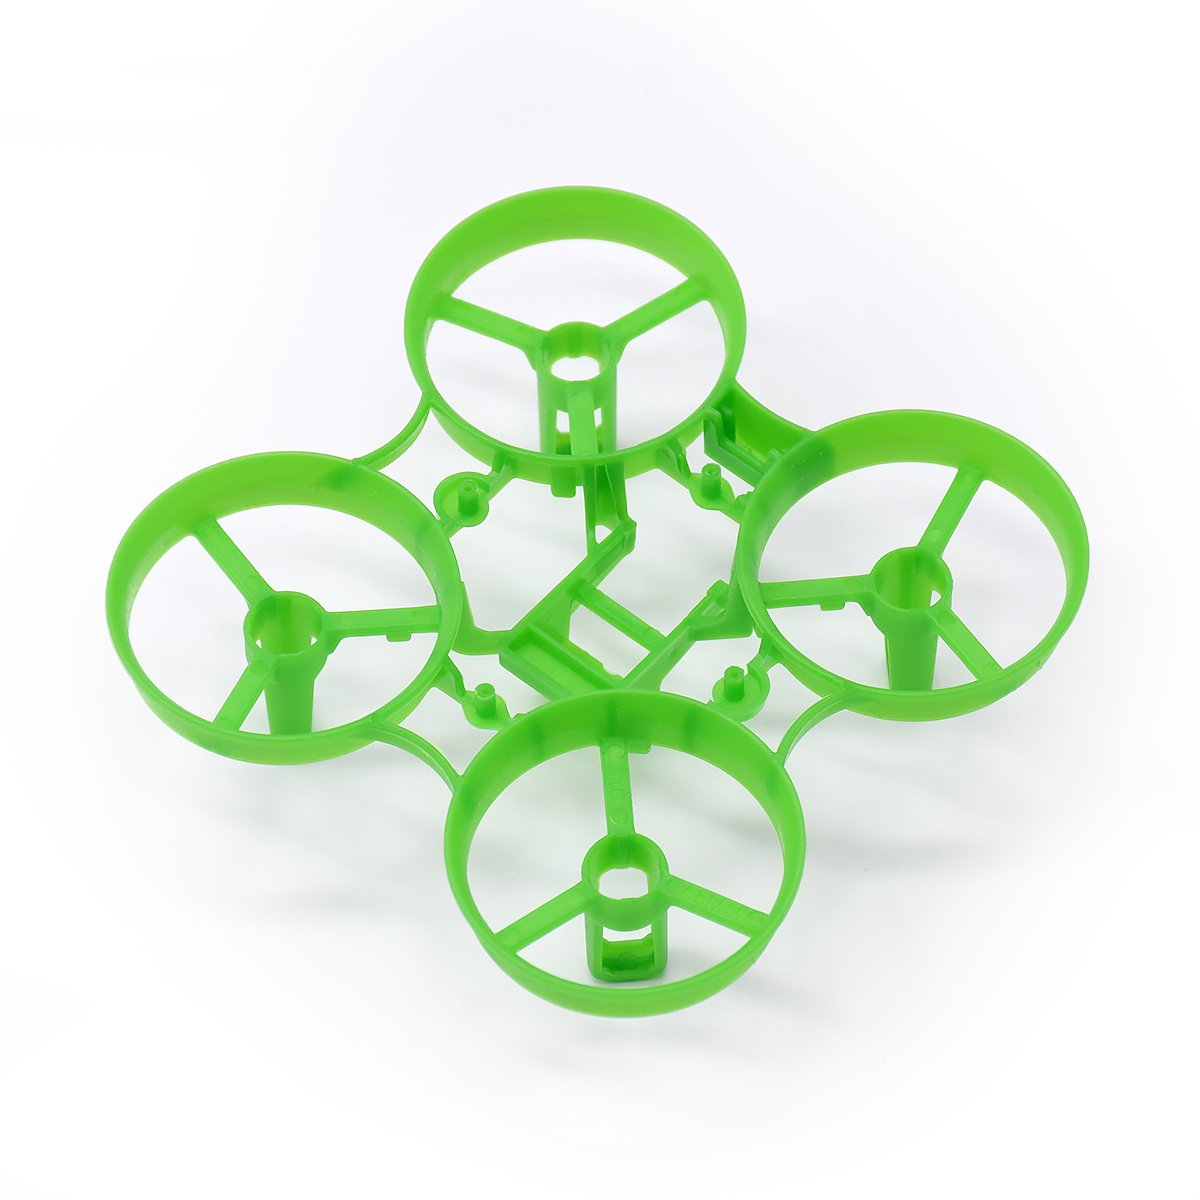 Beta FPV 7x16mm Motor用65mm Tiny Whoop V3 Frame(Green)